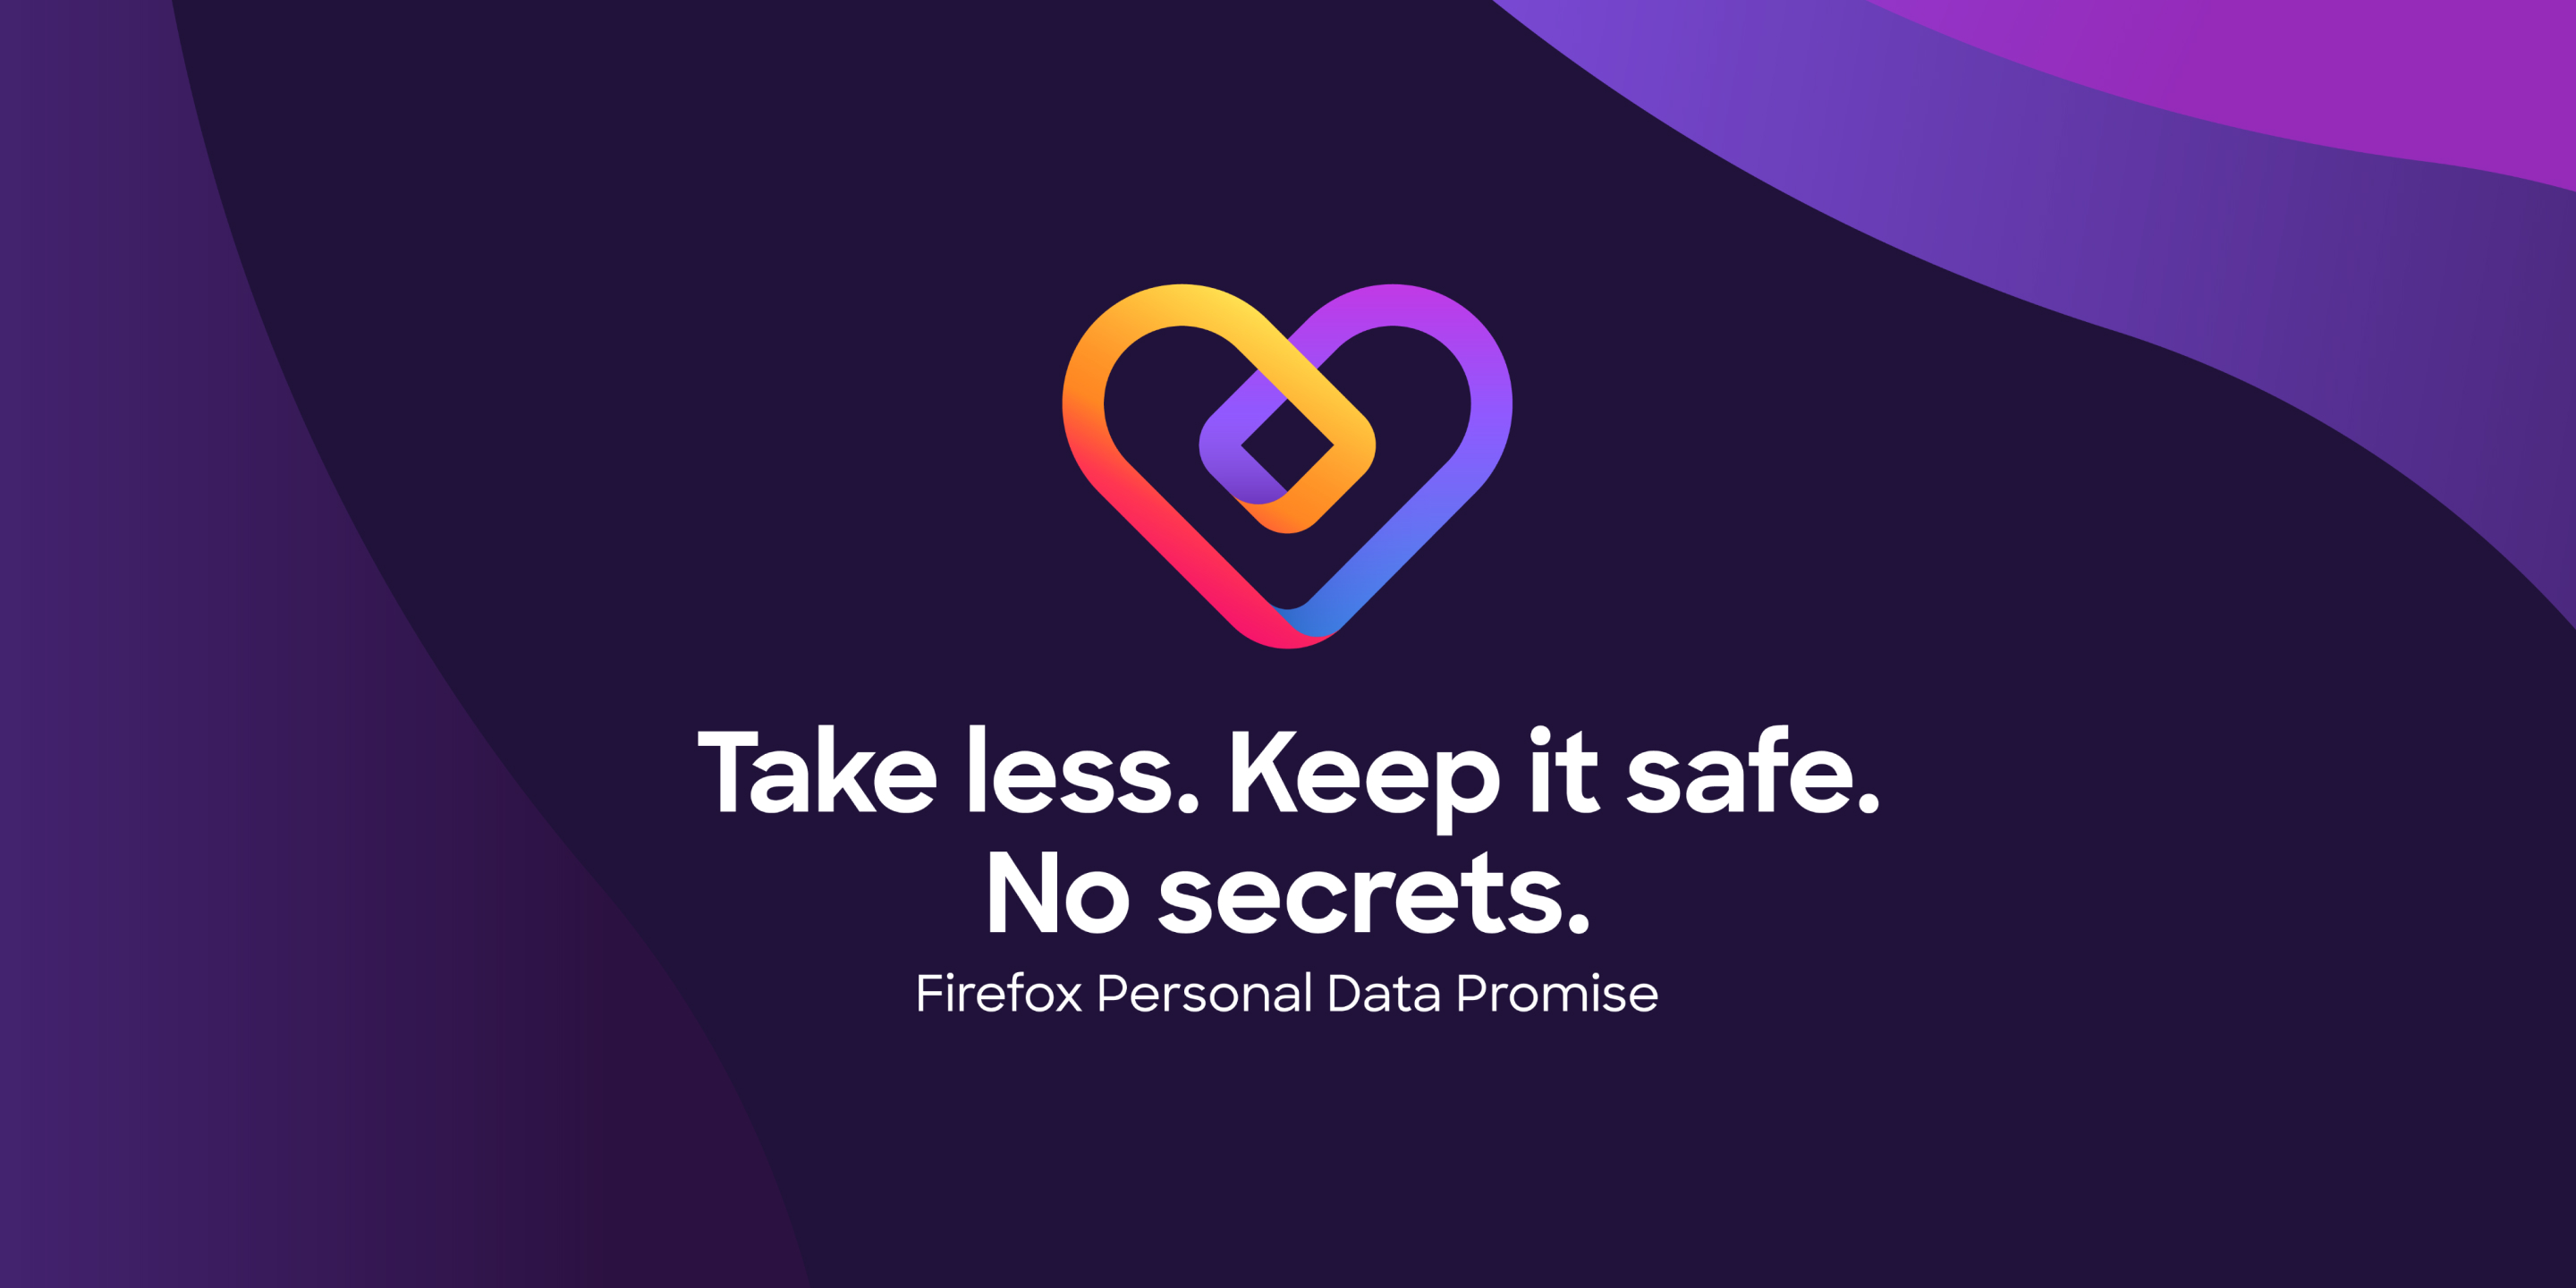 Firefox personal data promise